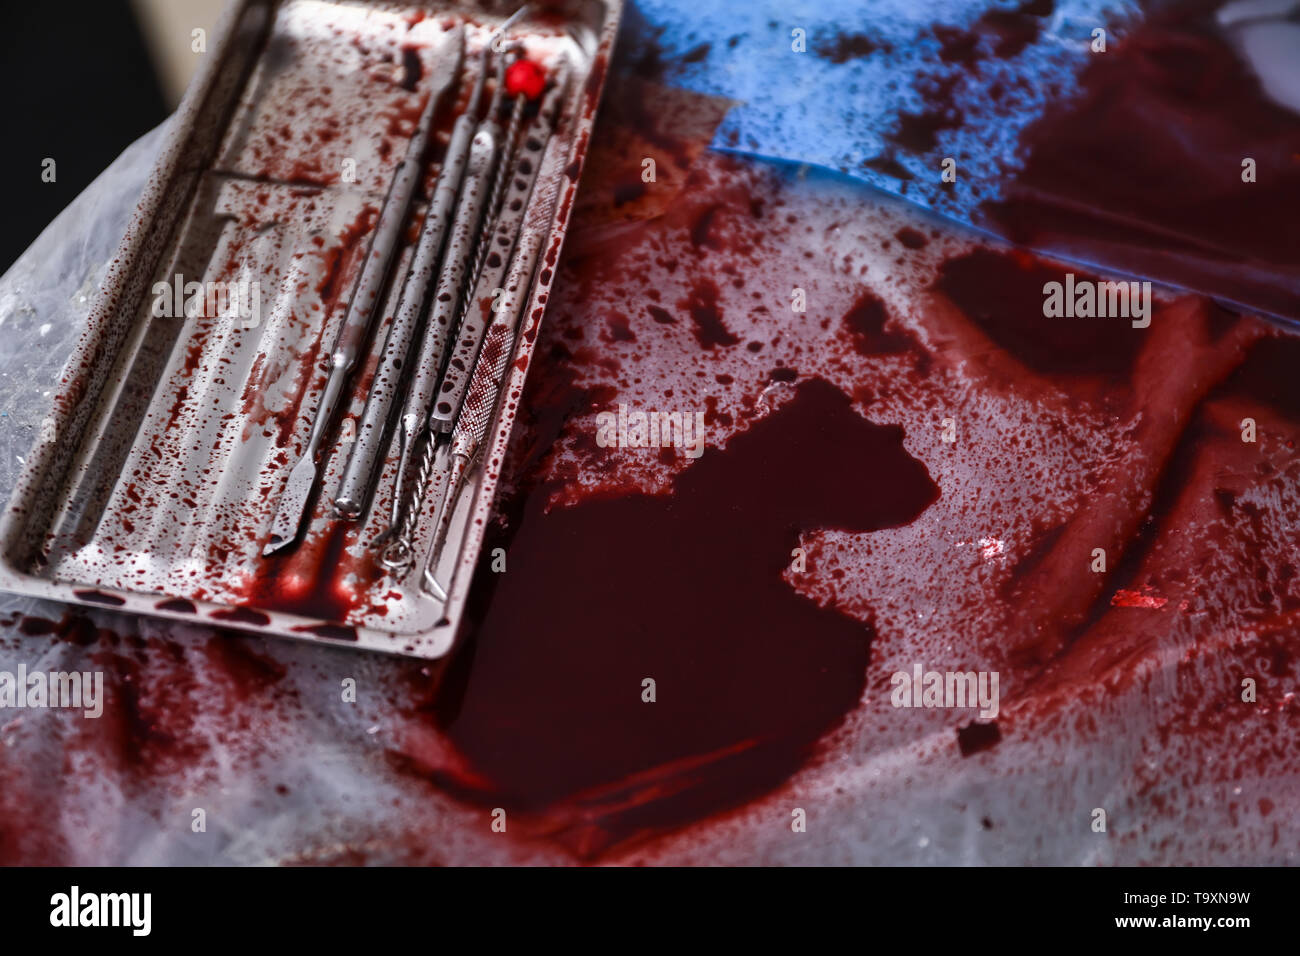 Crime scene with instruments of tortures, closeup - Stock Image